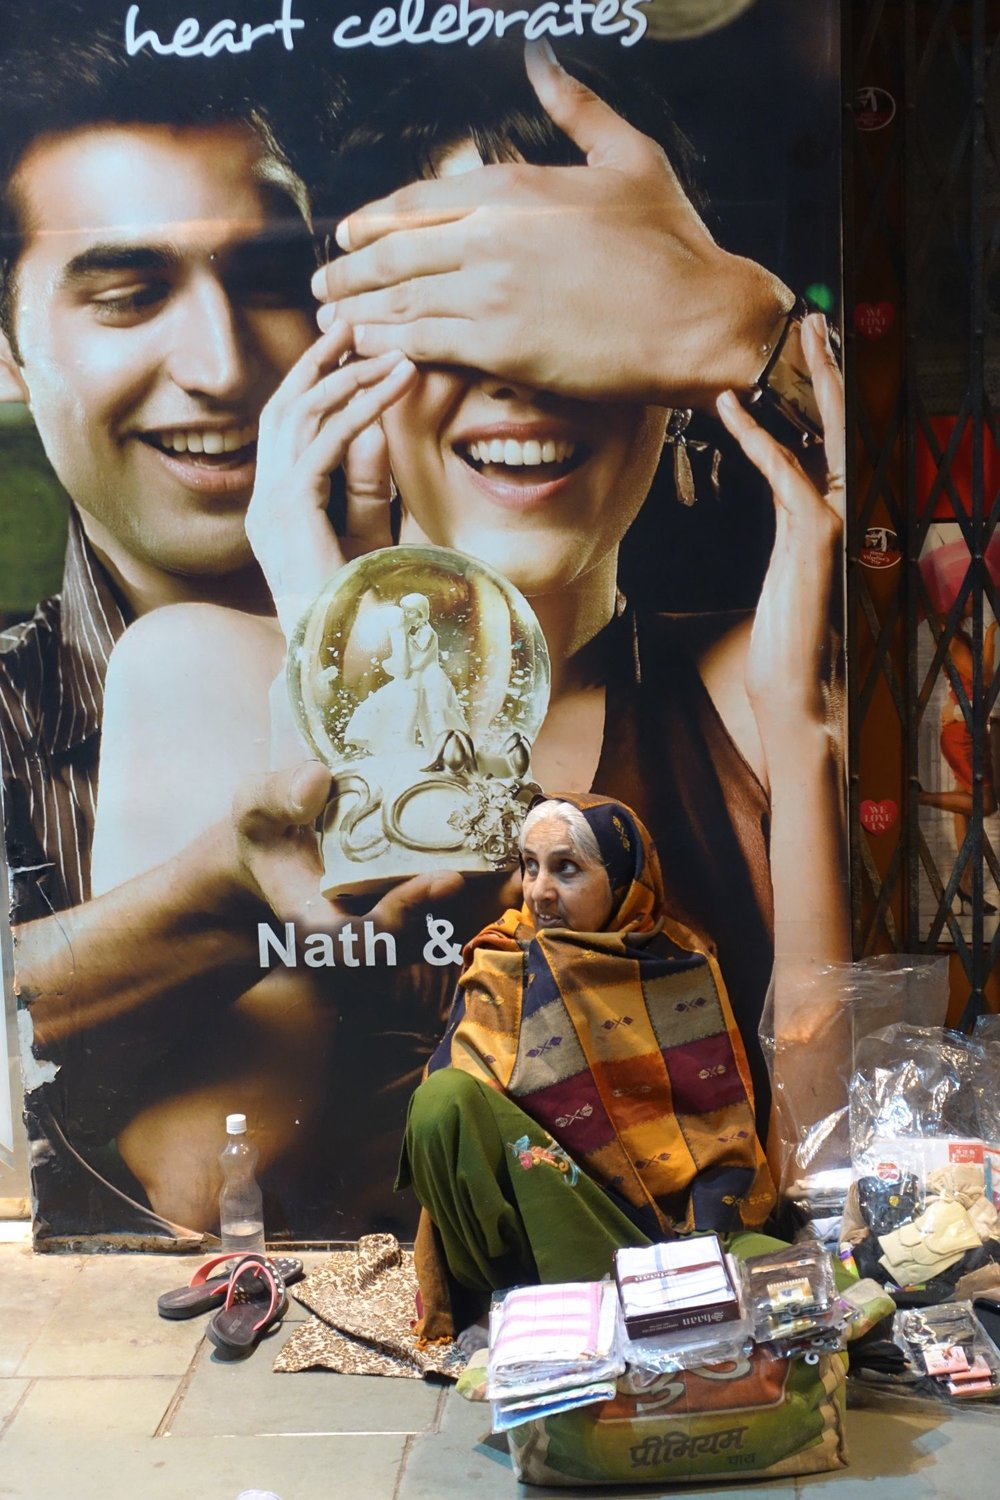 Delhi | cosmetic advertising and homeless | ©sandrine cohen